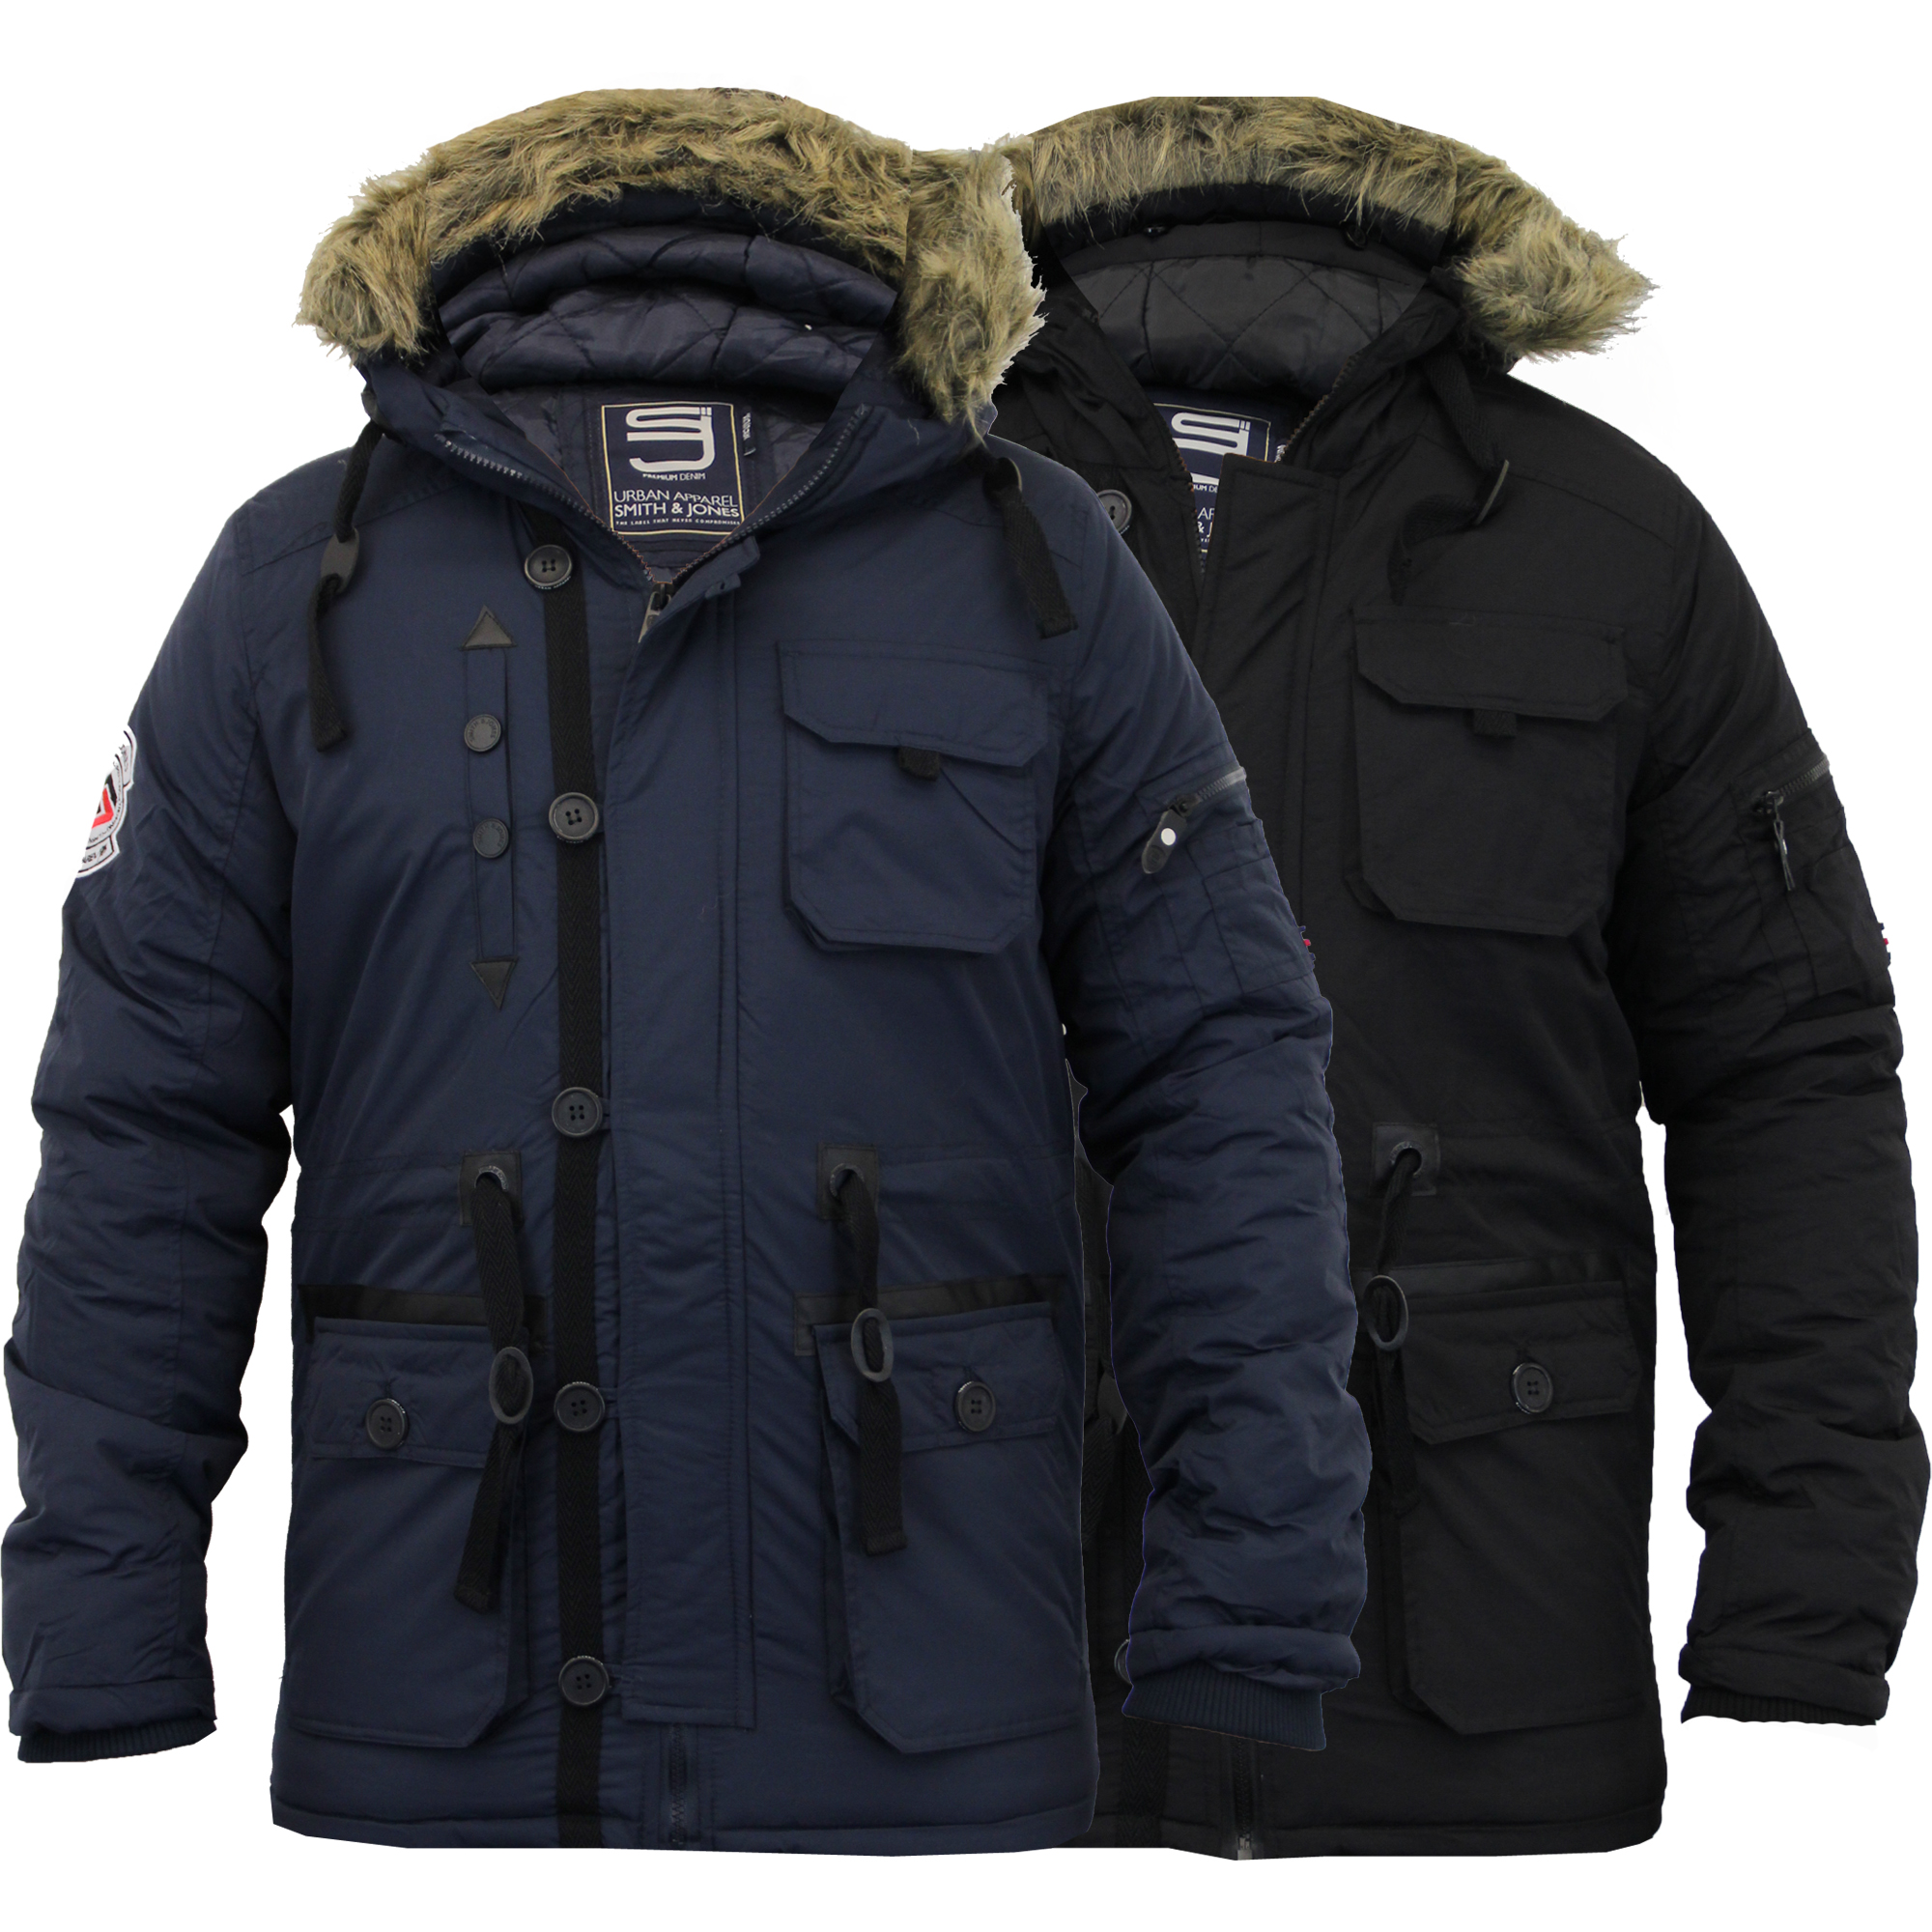 Mens Parka Jacket Smith & Jones Coat Padded Quilted Fur Hooded ...